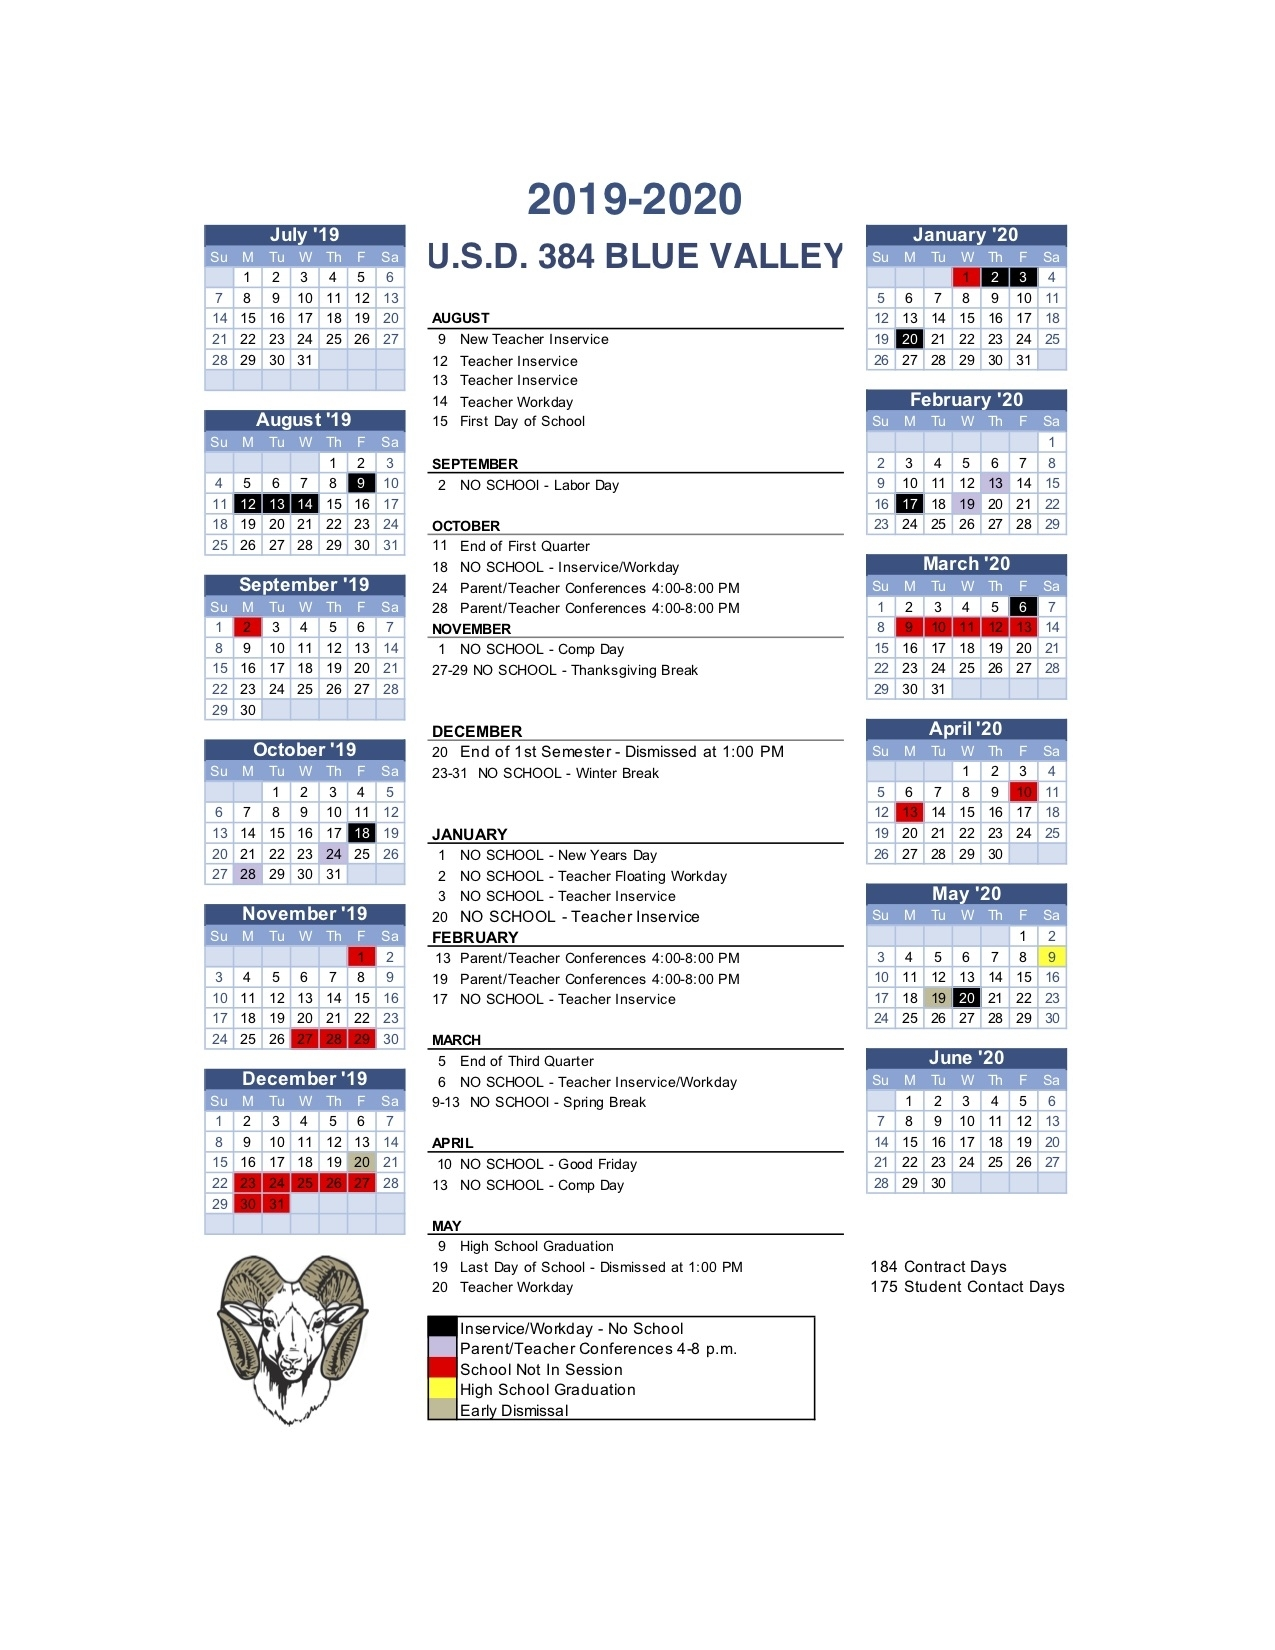 Blue Valley Usd 384 pertaining to U Of M 2019 2020 Calendar